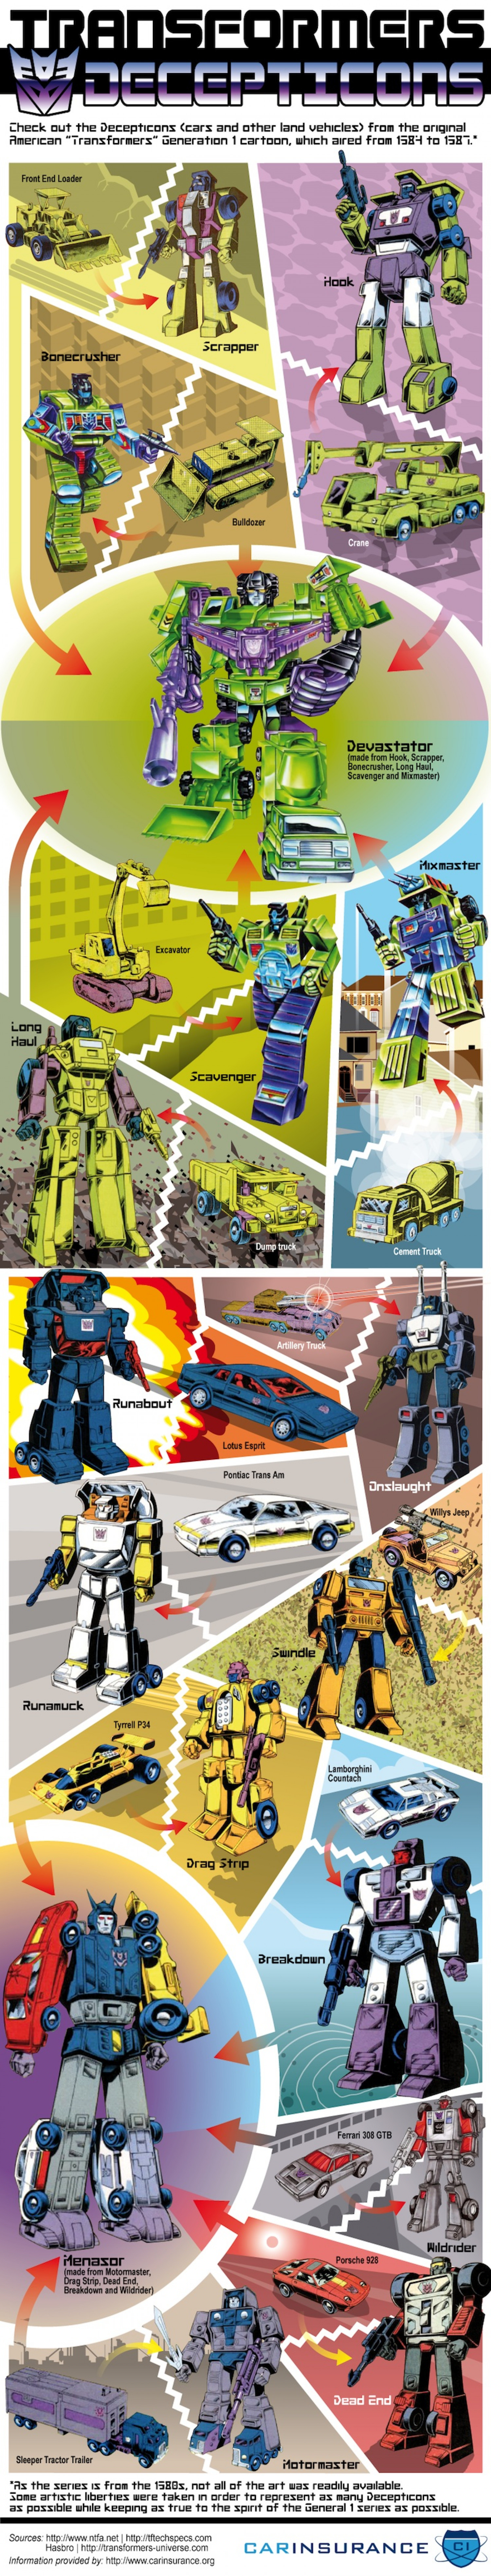 Transformers: The Decepticons Vehicles Infographic